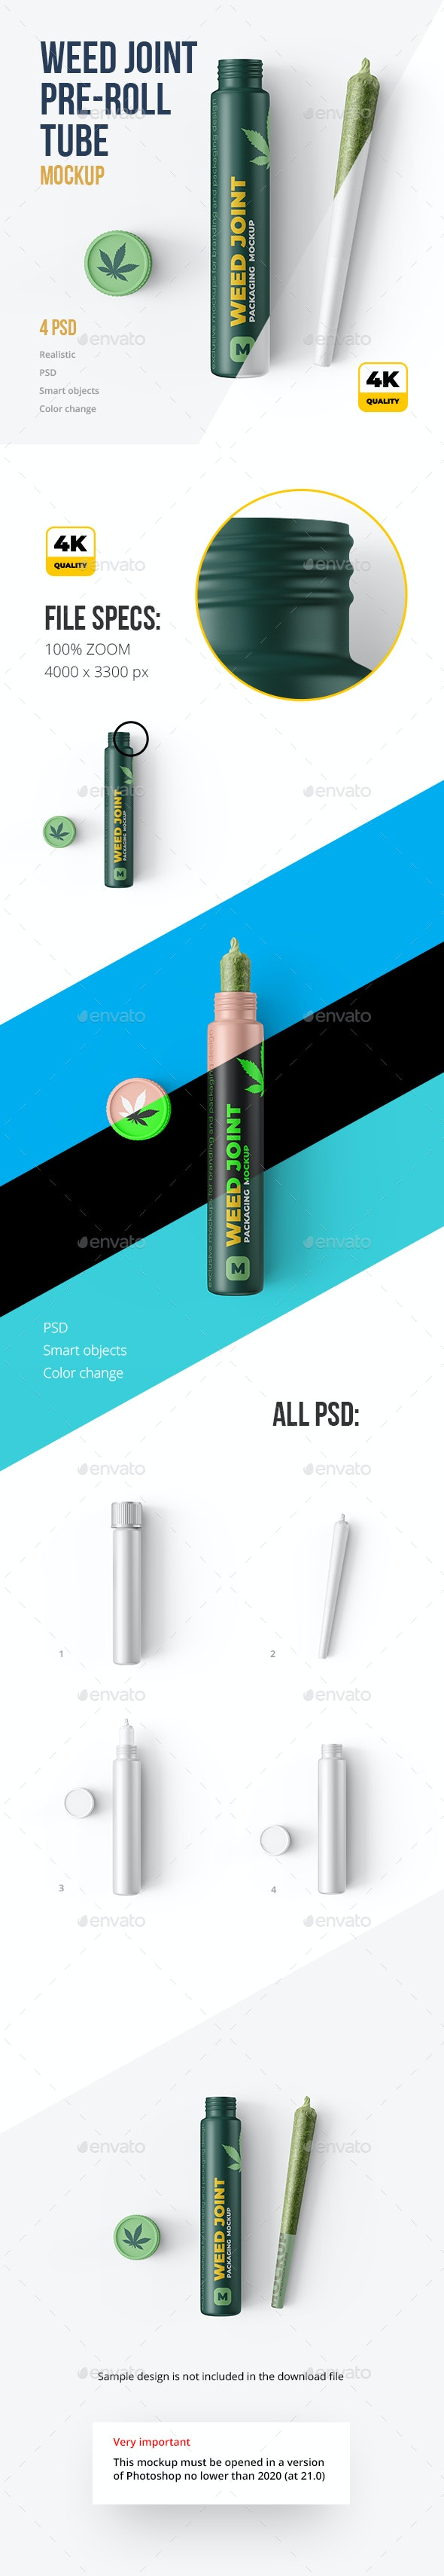 Weed Joint (pre-roll) Tubes 4 PSD - Packaging Product Mock-Ups